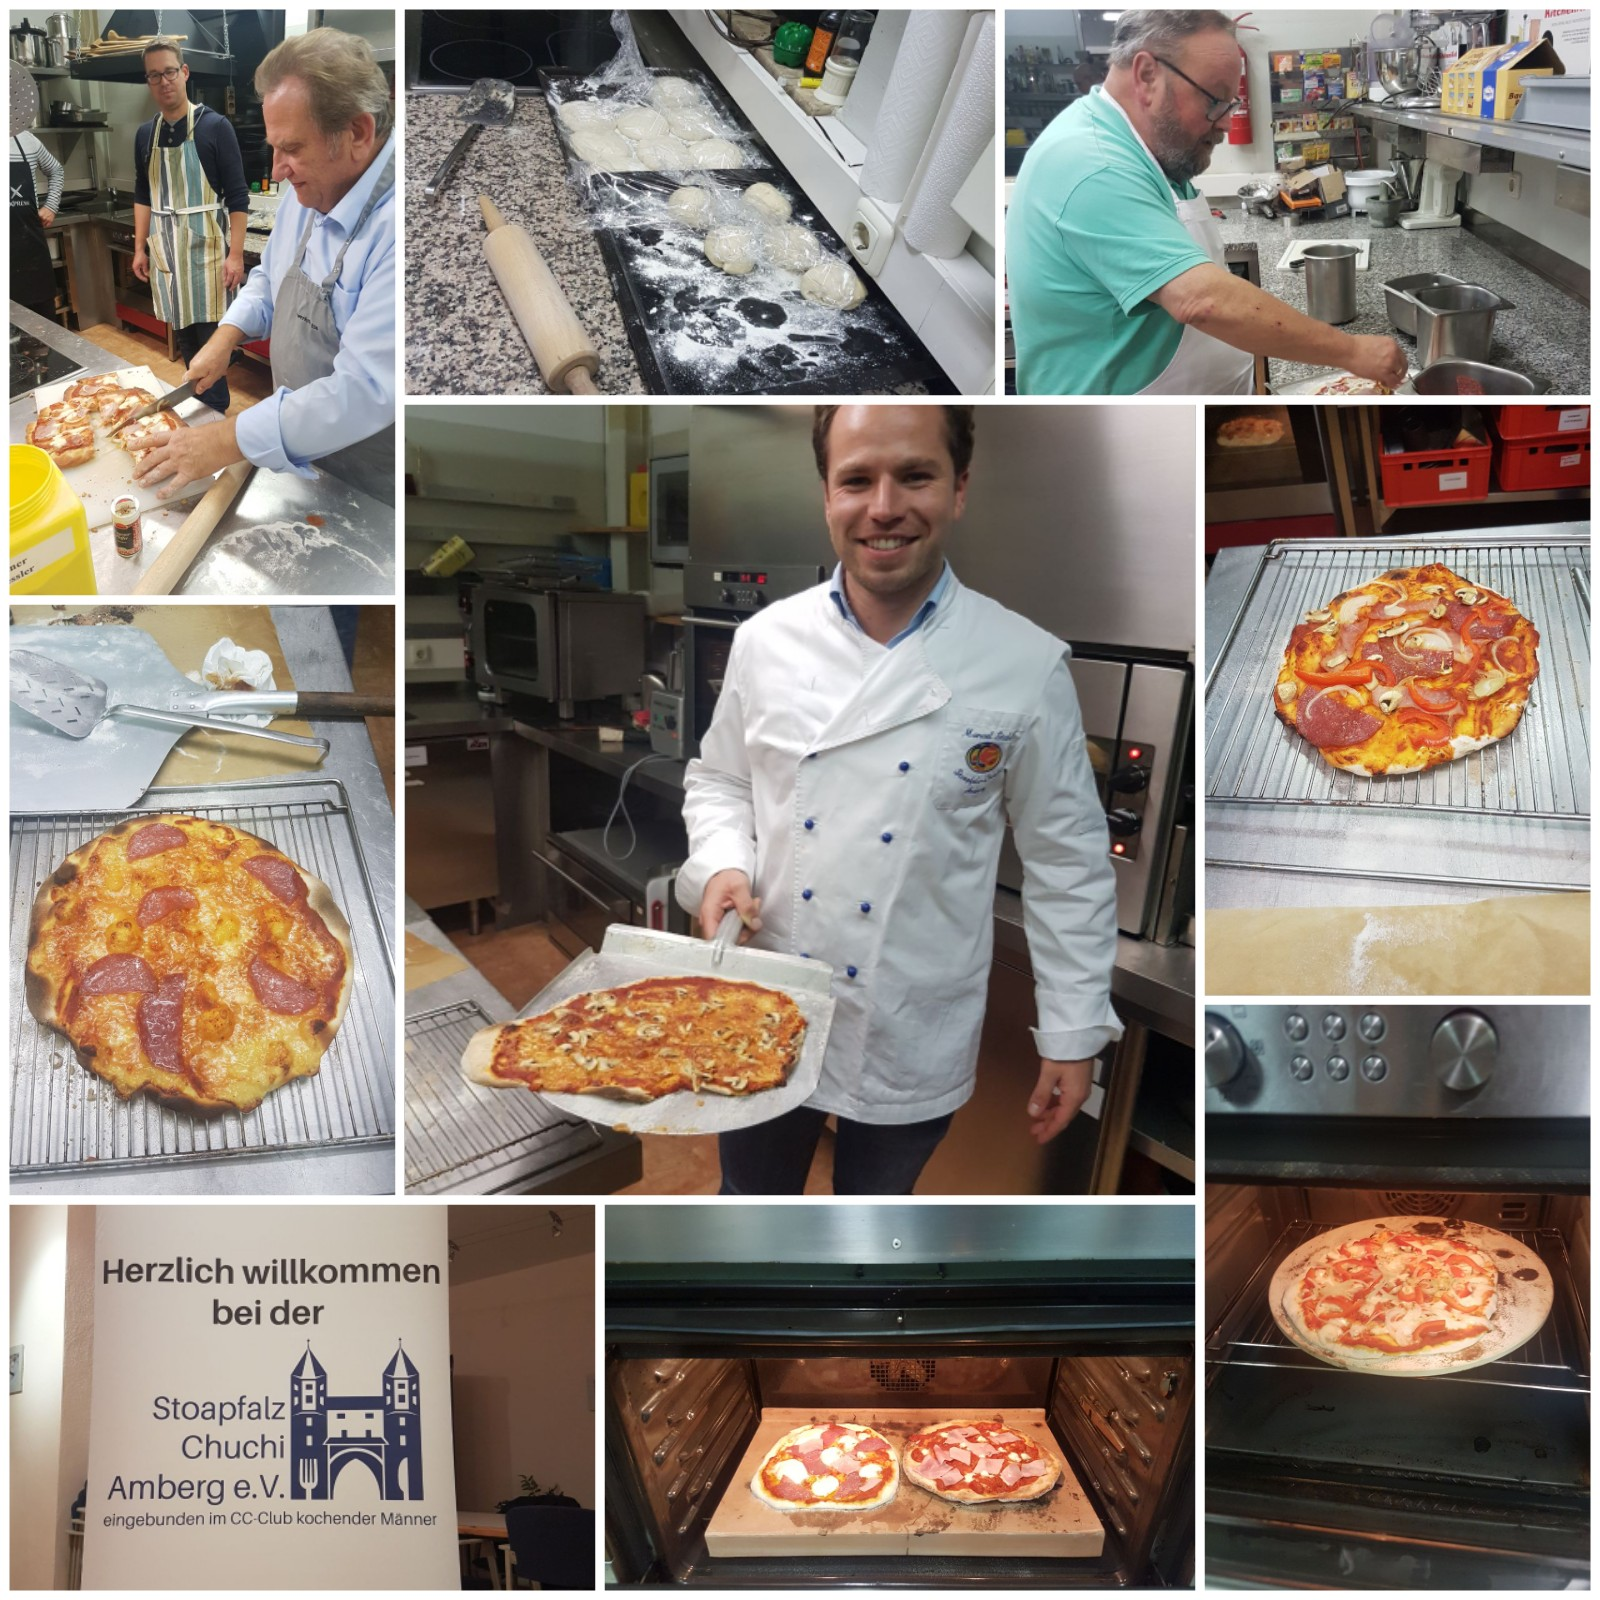 Pizzaworkshop im Oktober 2017